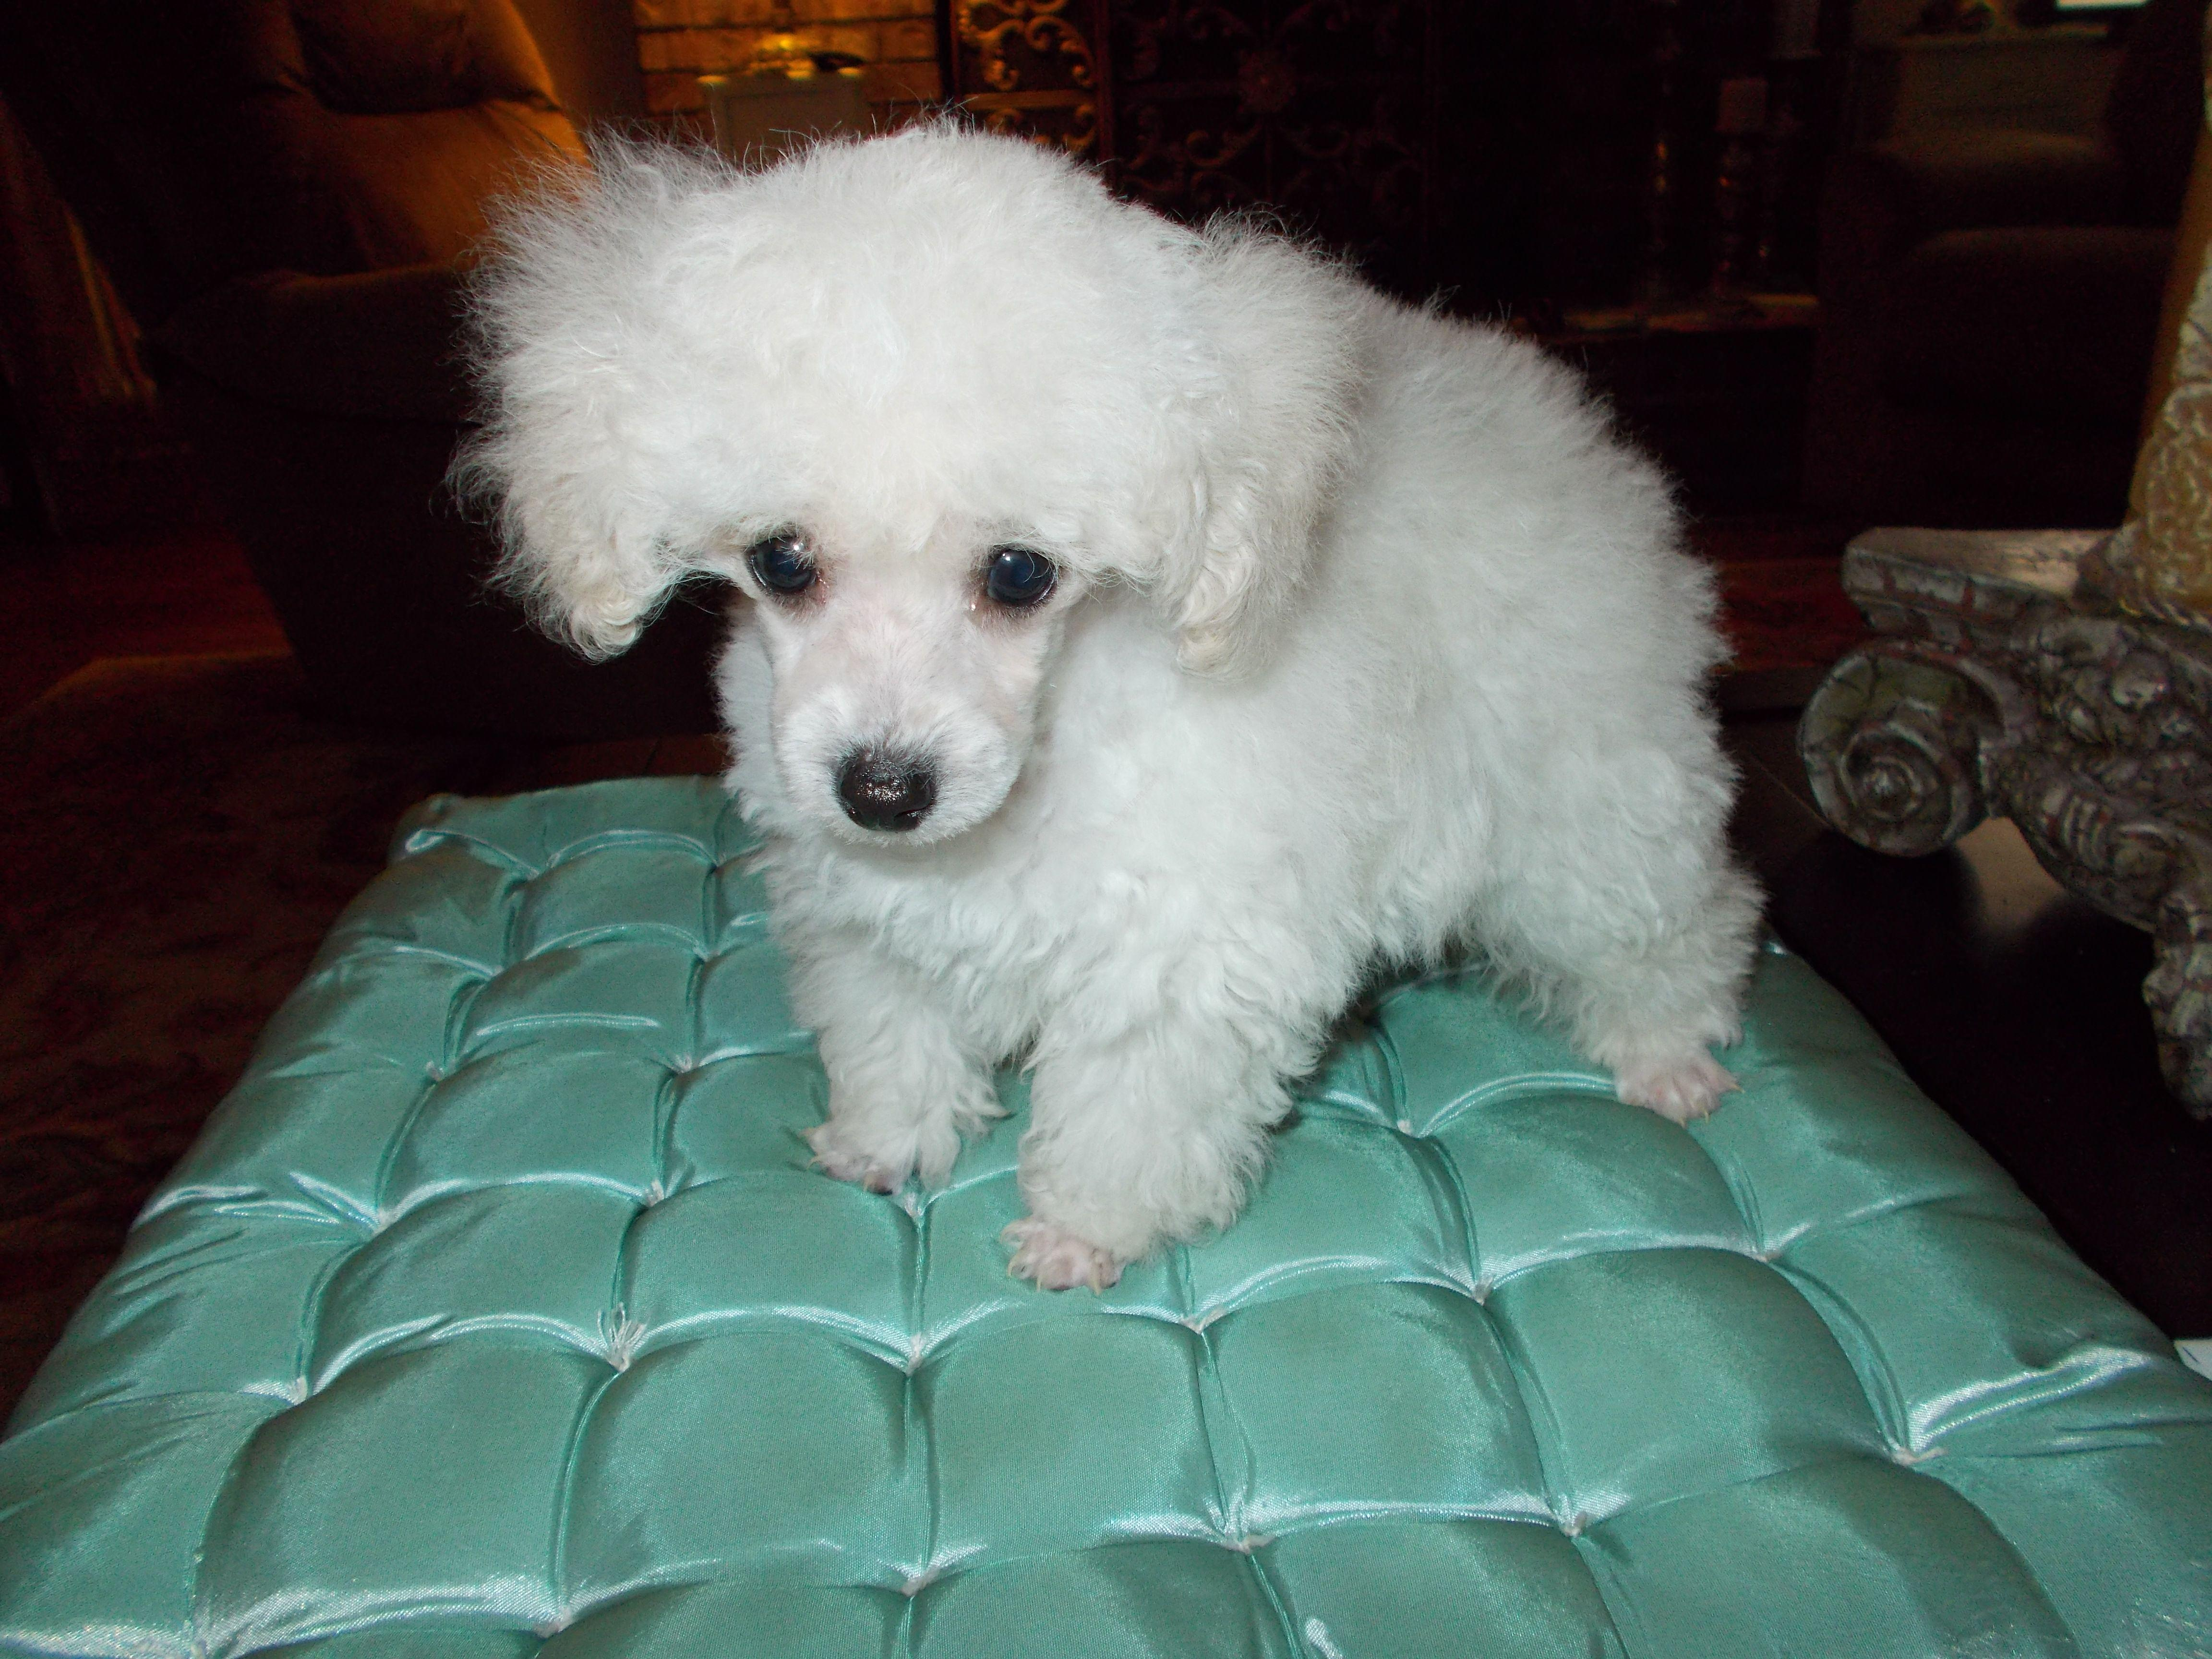 Teacup Amp Toy Poodle Breeders Amp Puppies For Sale In Florida